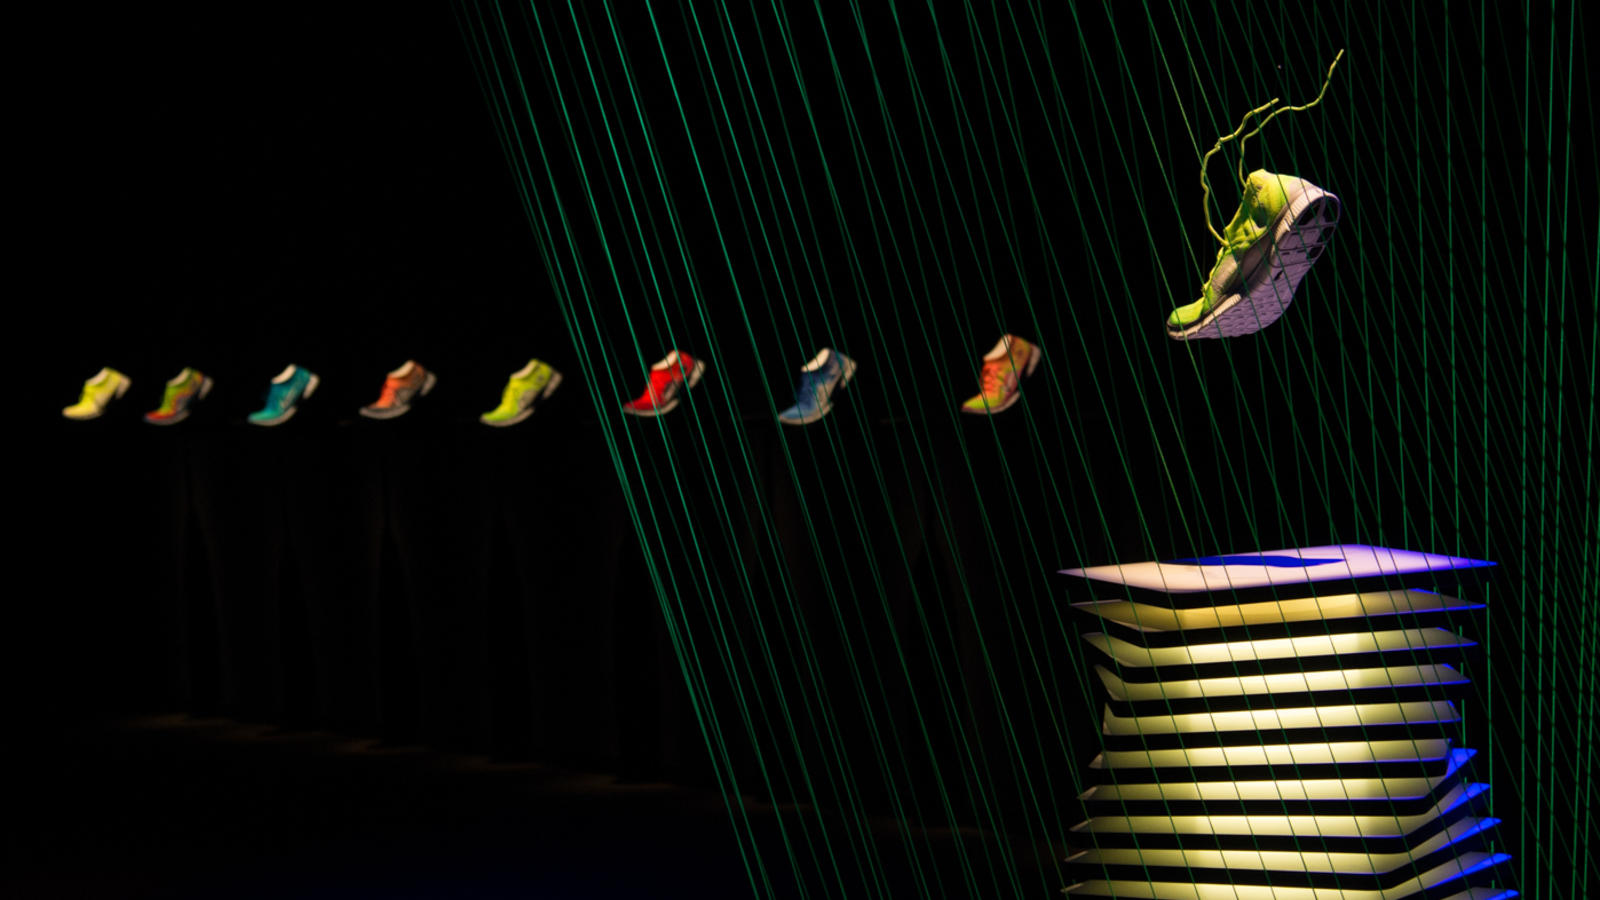 nike-free-flyknit-display-2